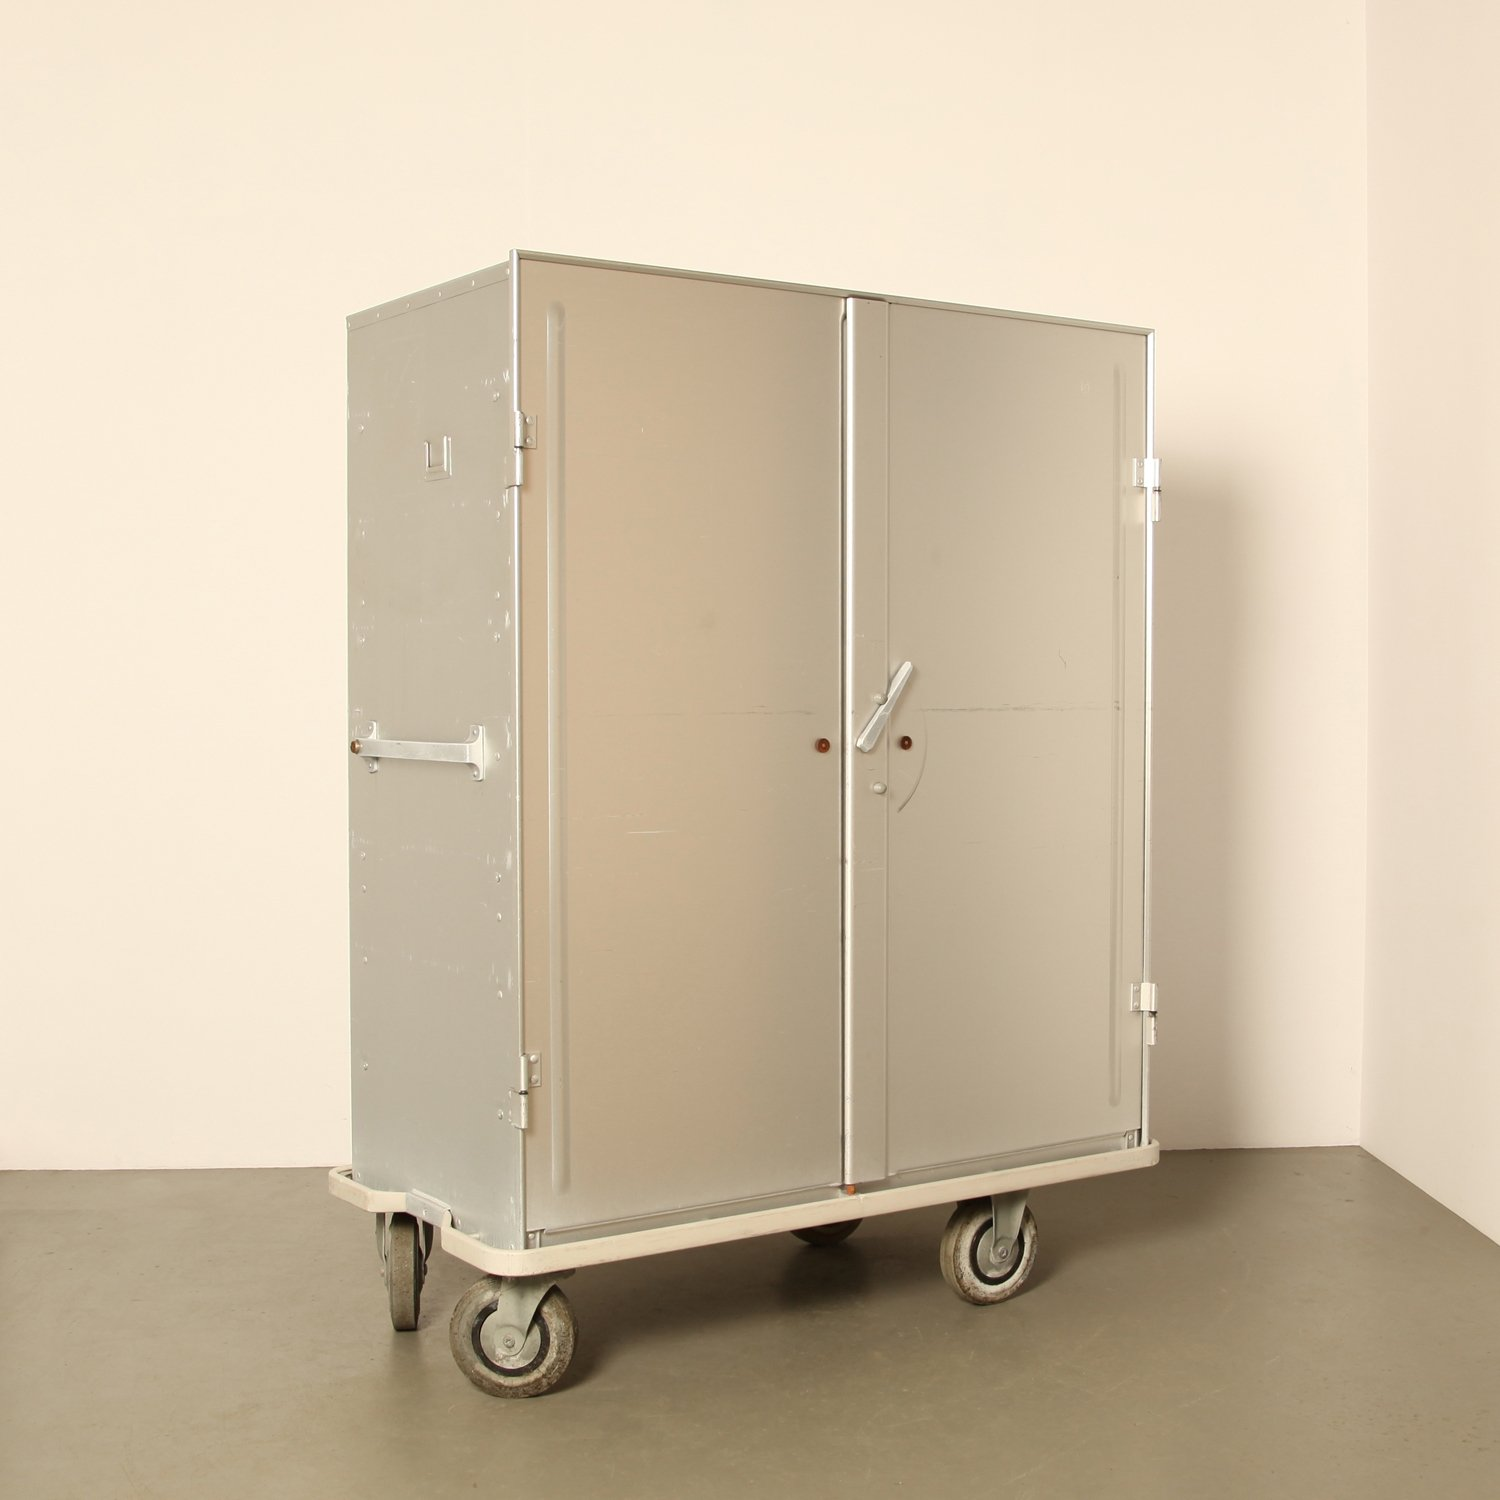 zarges aluminum storage & transport cabinet on wheels | #71569